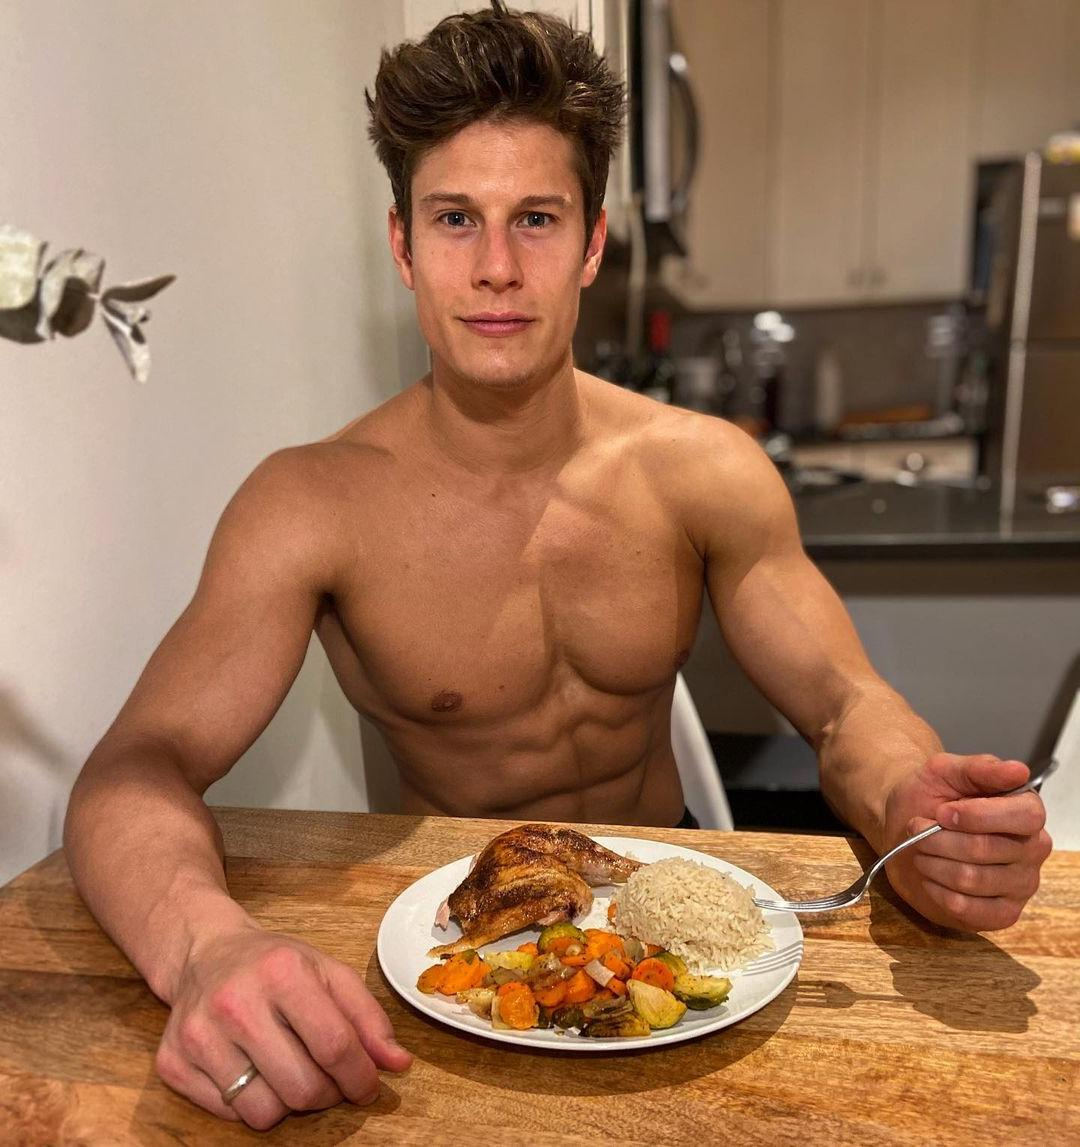 handsome-young-fit-shirtless-male-model-eating-healthy-food